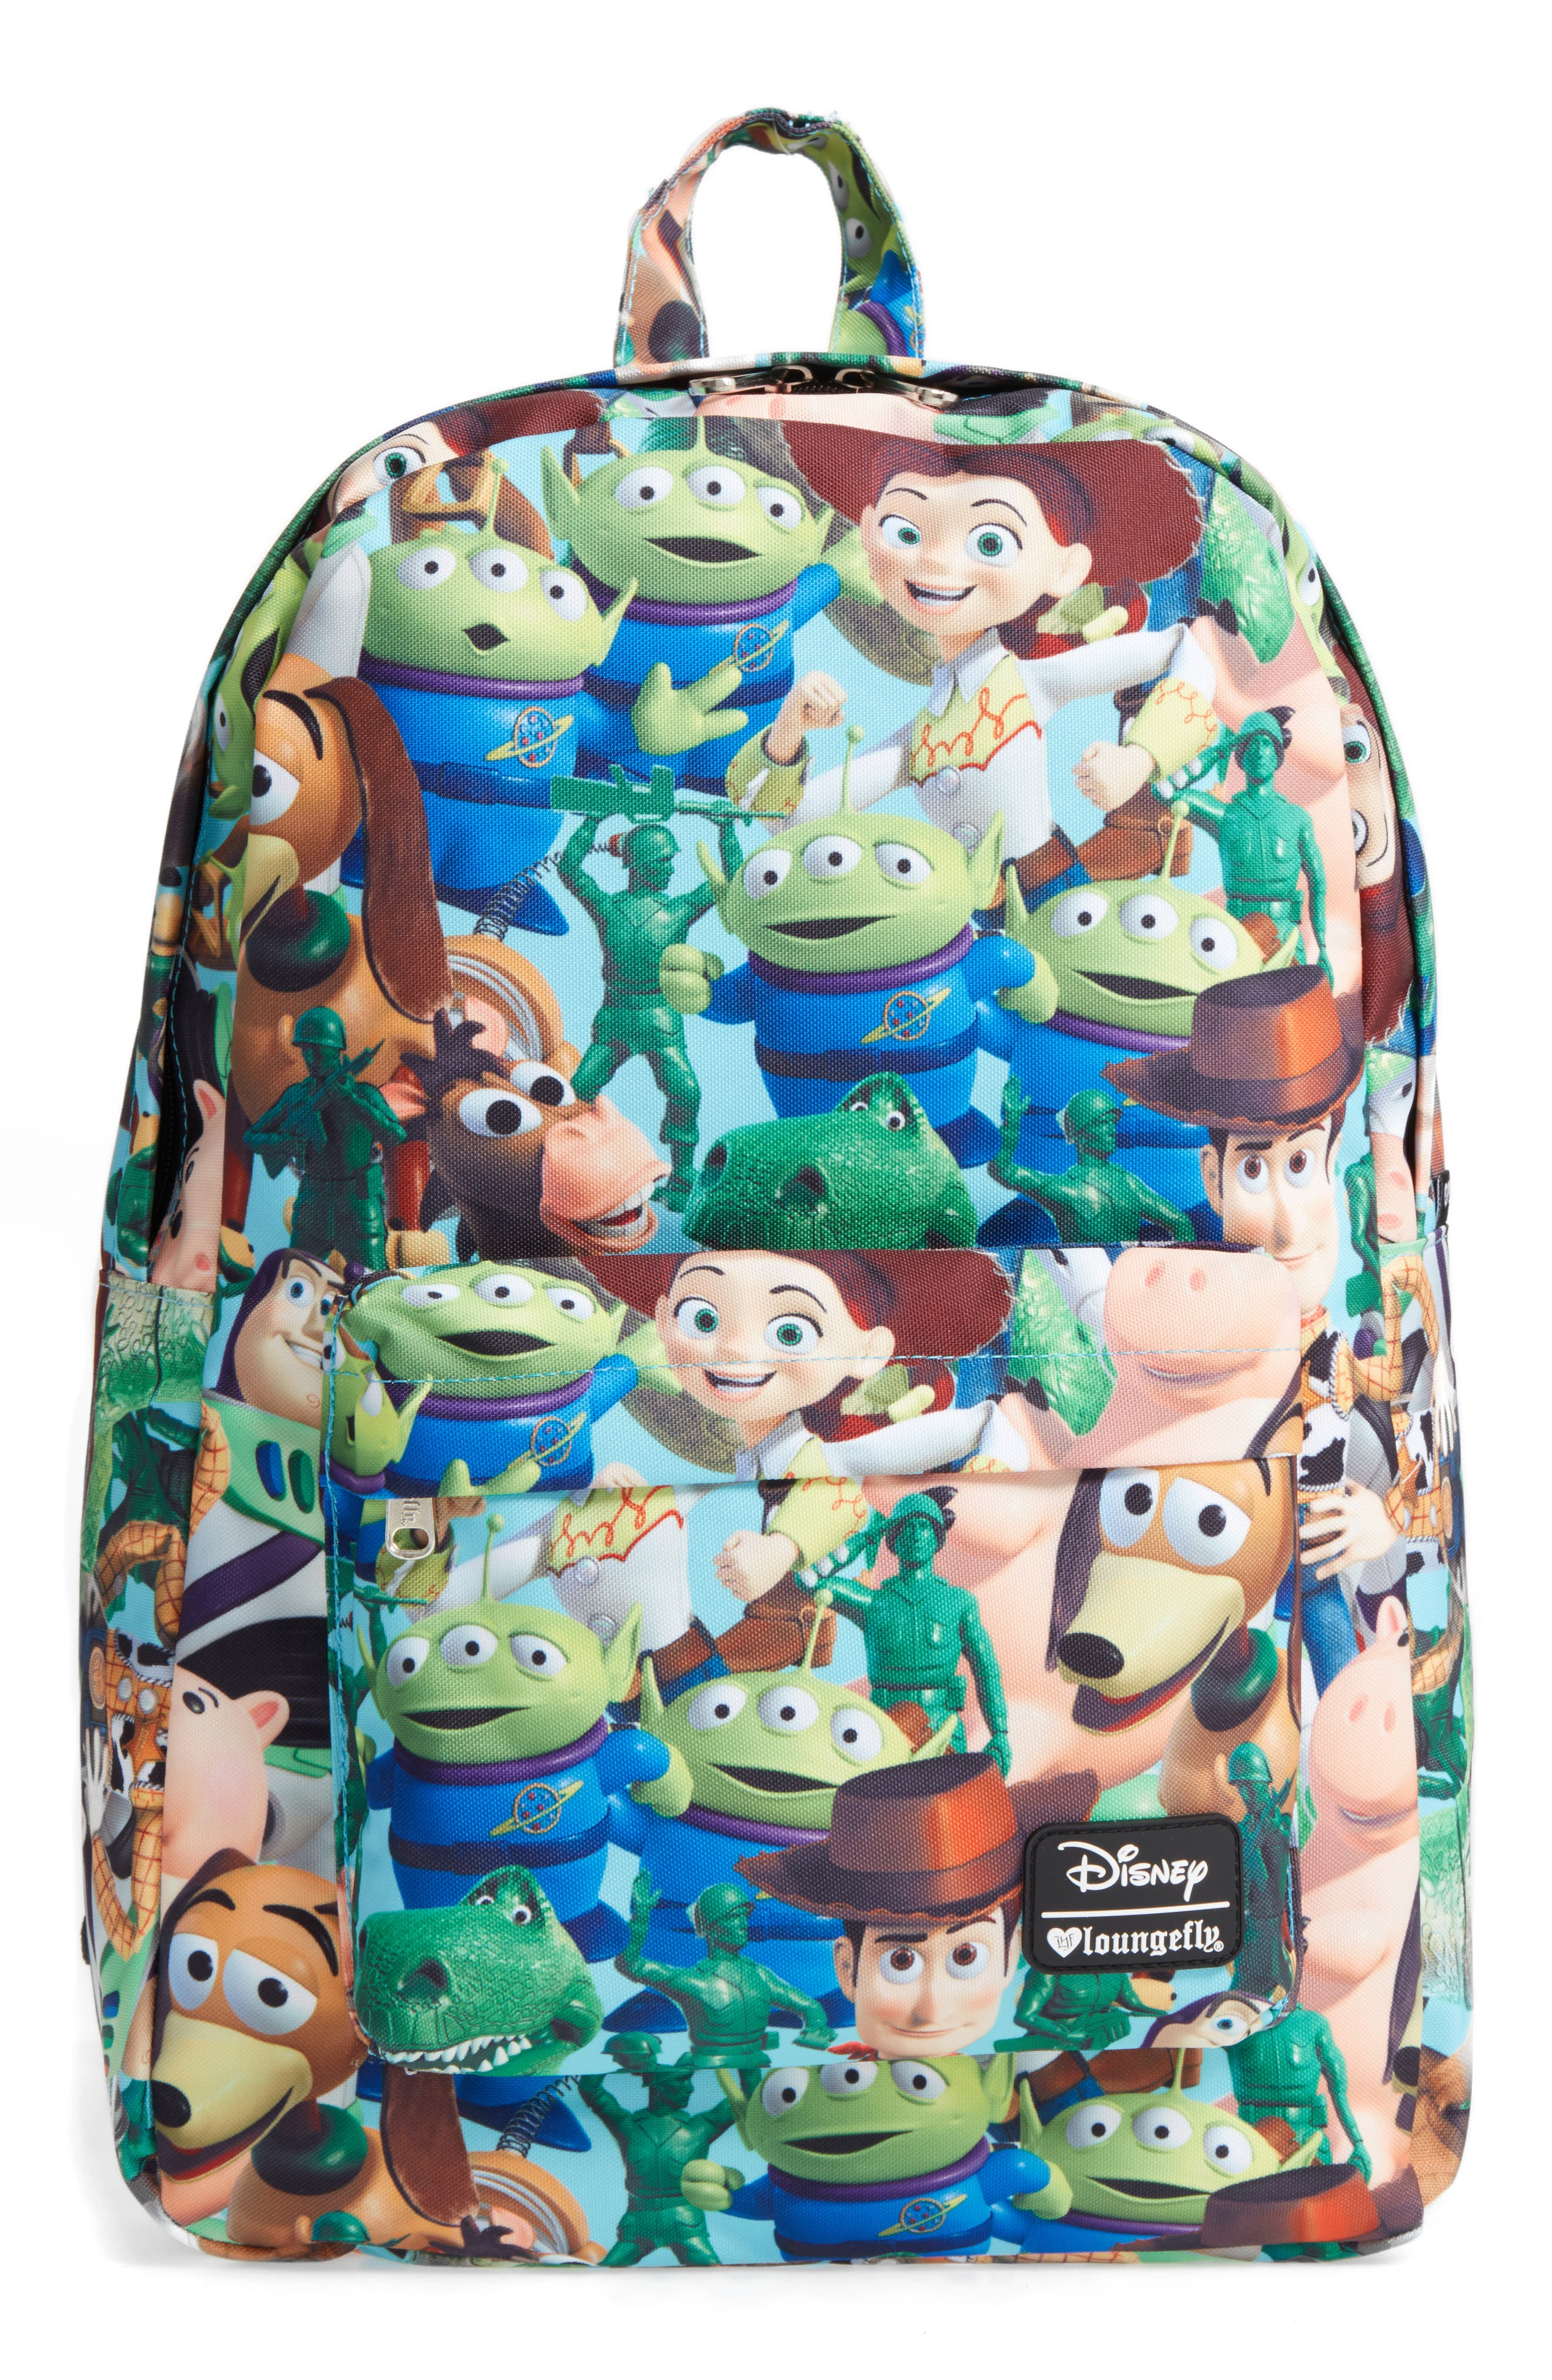 Disney<sup>®</sup> Toy Story Backpack,                             Main thumbnail 1, color,                             Blue Multi